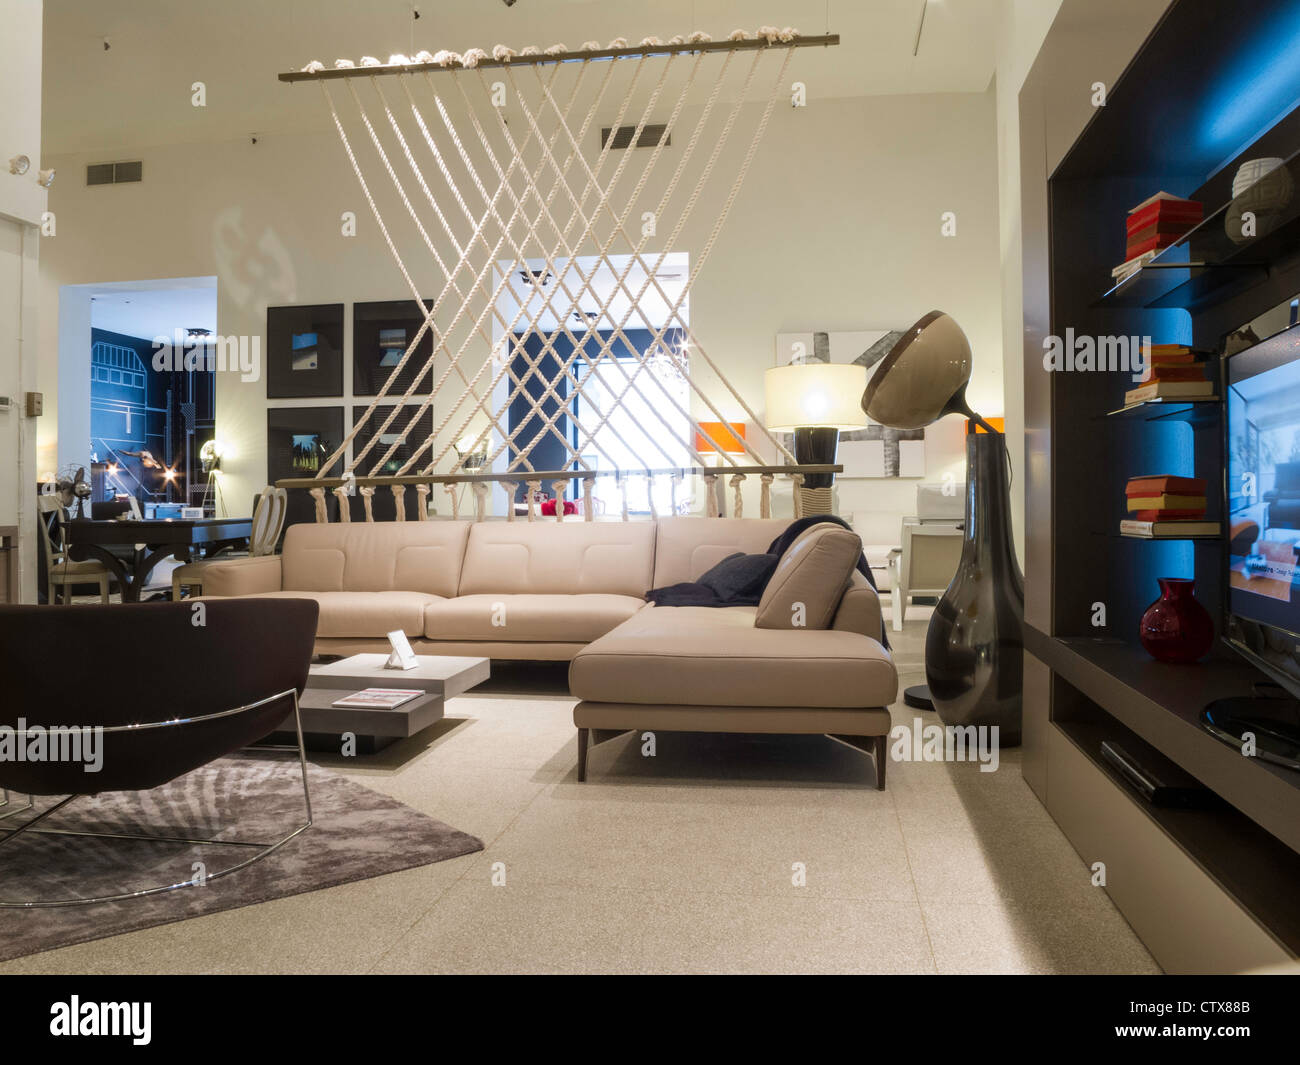 Roche Bobois Furniture Store Interior Nyc Stock Photo Royalty Free Image 49749739 Alamy